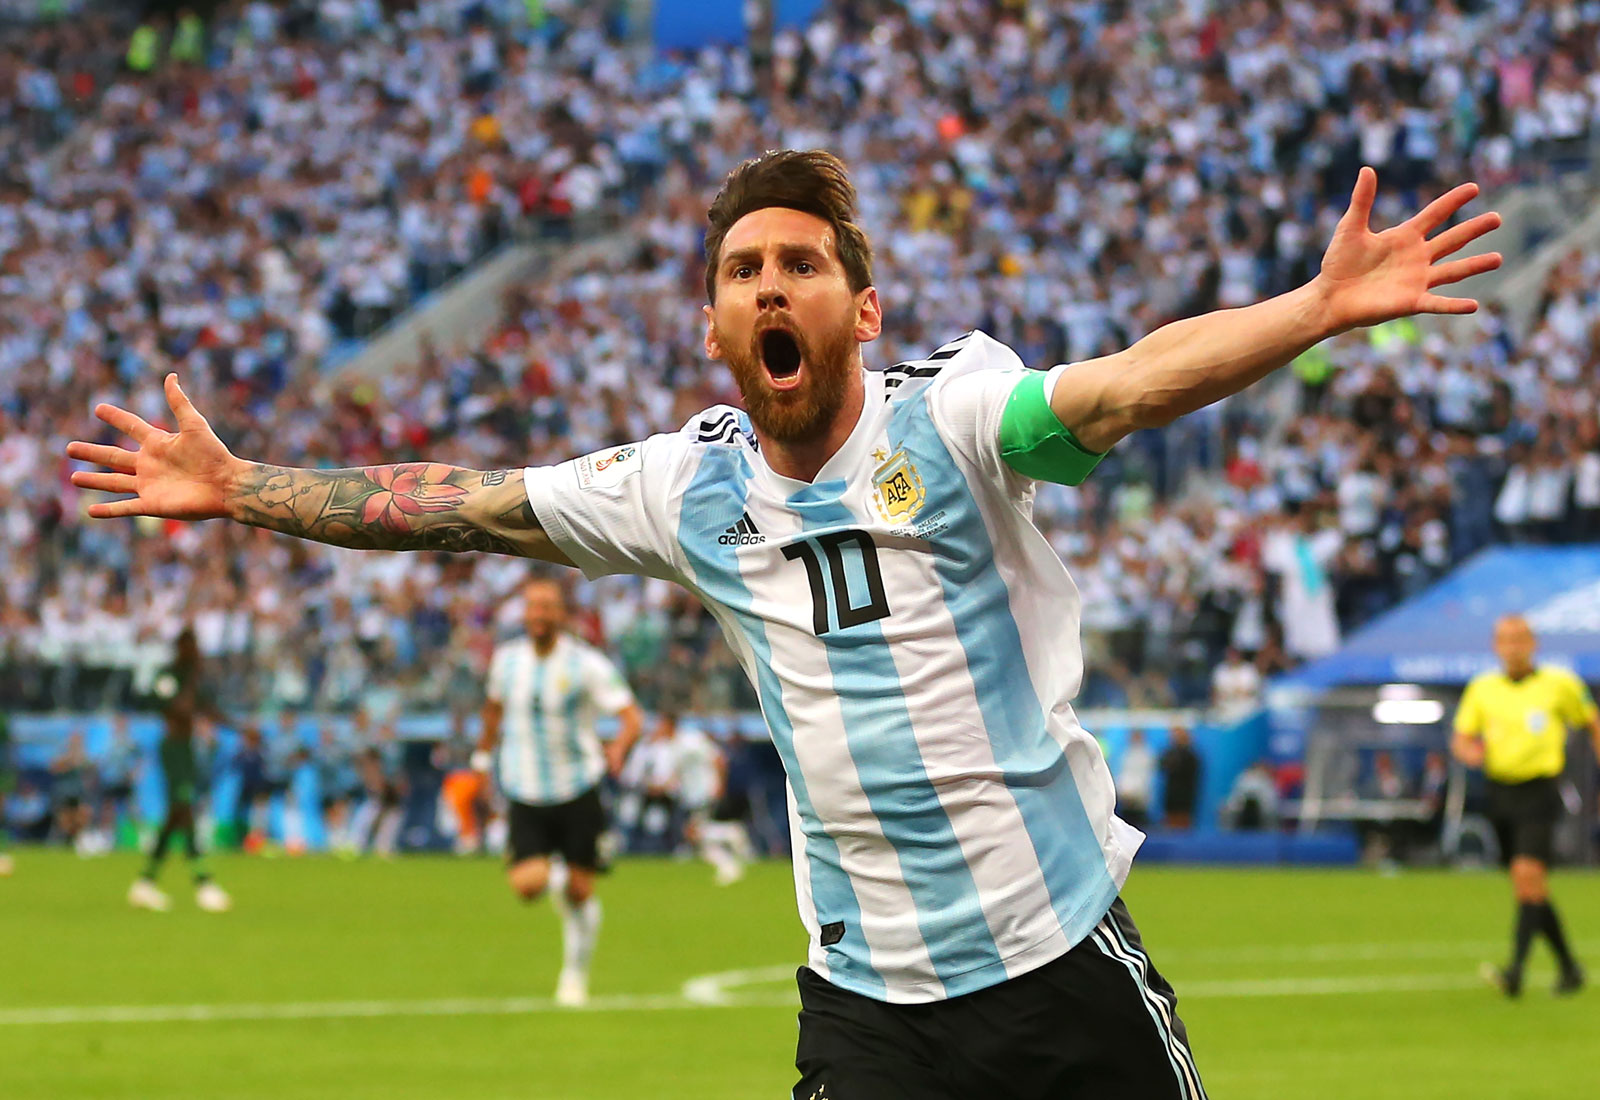 Lionel Messi scores for Argentina vs. Nigeria in the World Cup